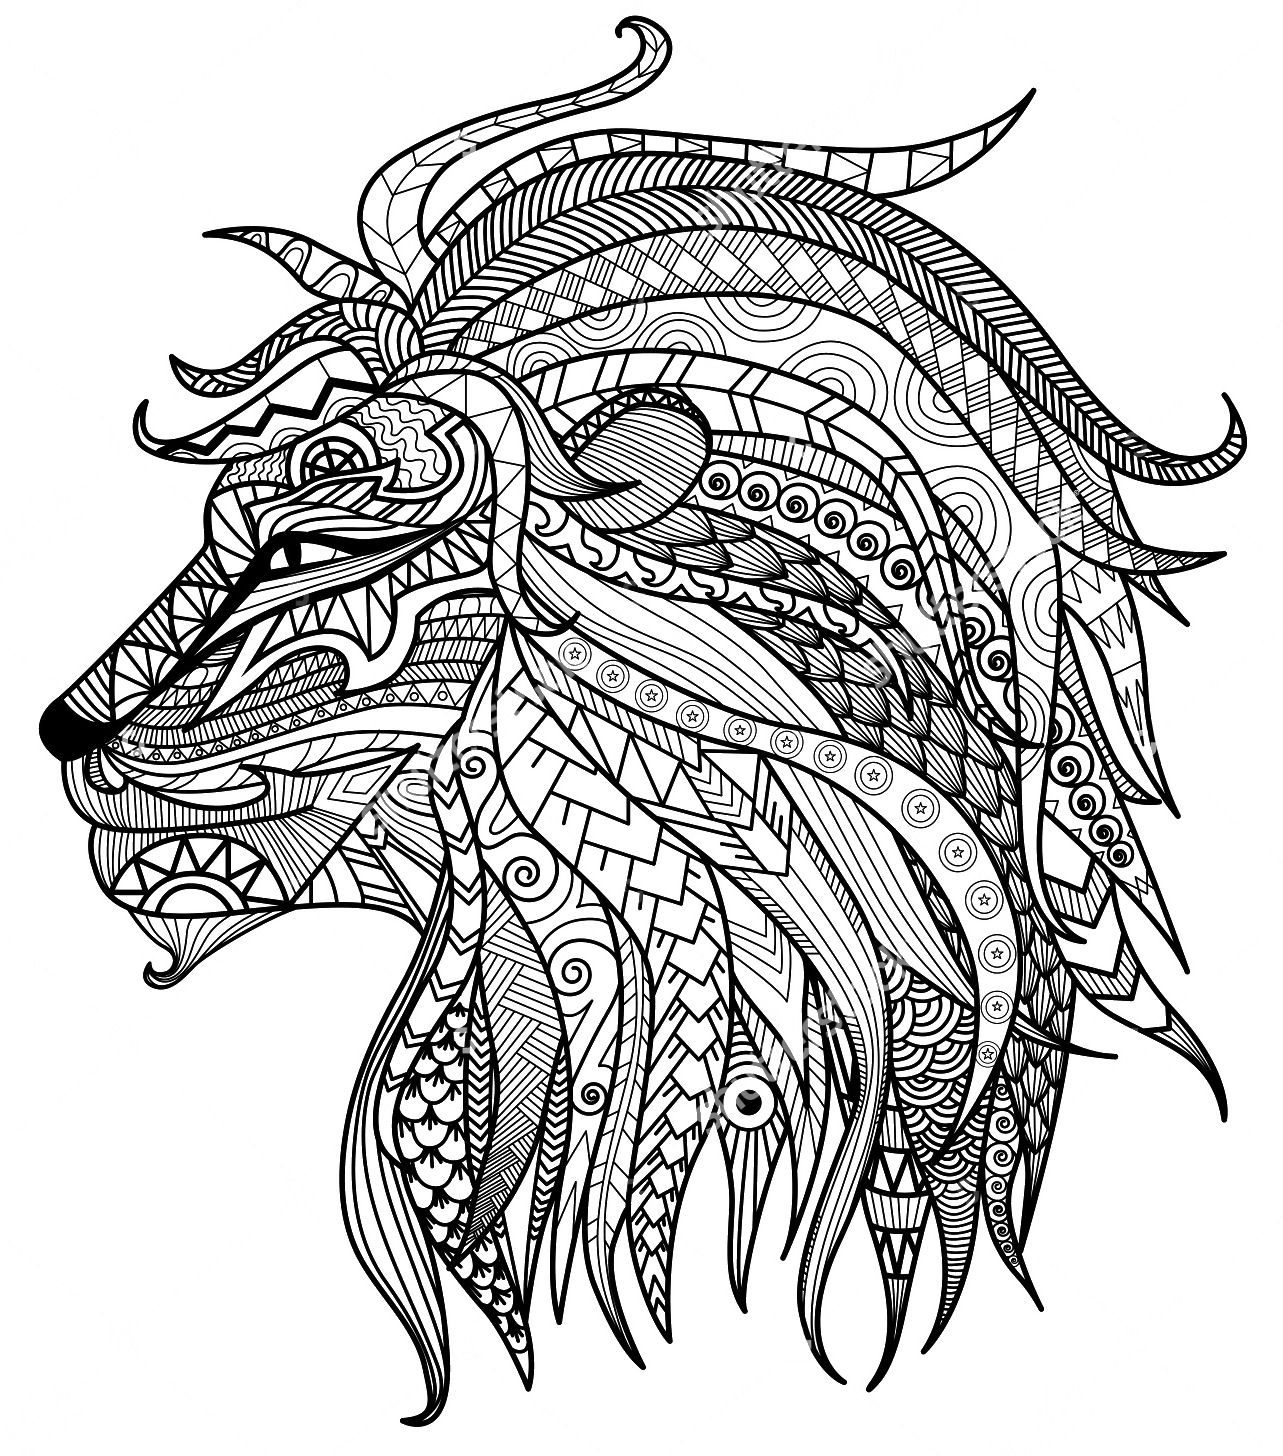 adult coloring pages lion head adult coloring pages and zentangled art for grown ups lion. Black Bedroom Furniture Sets. Home Design Ideas